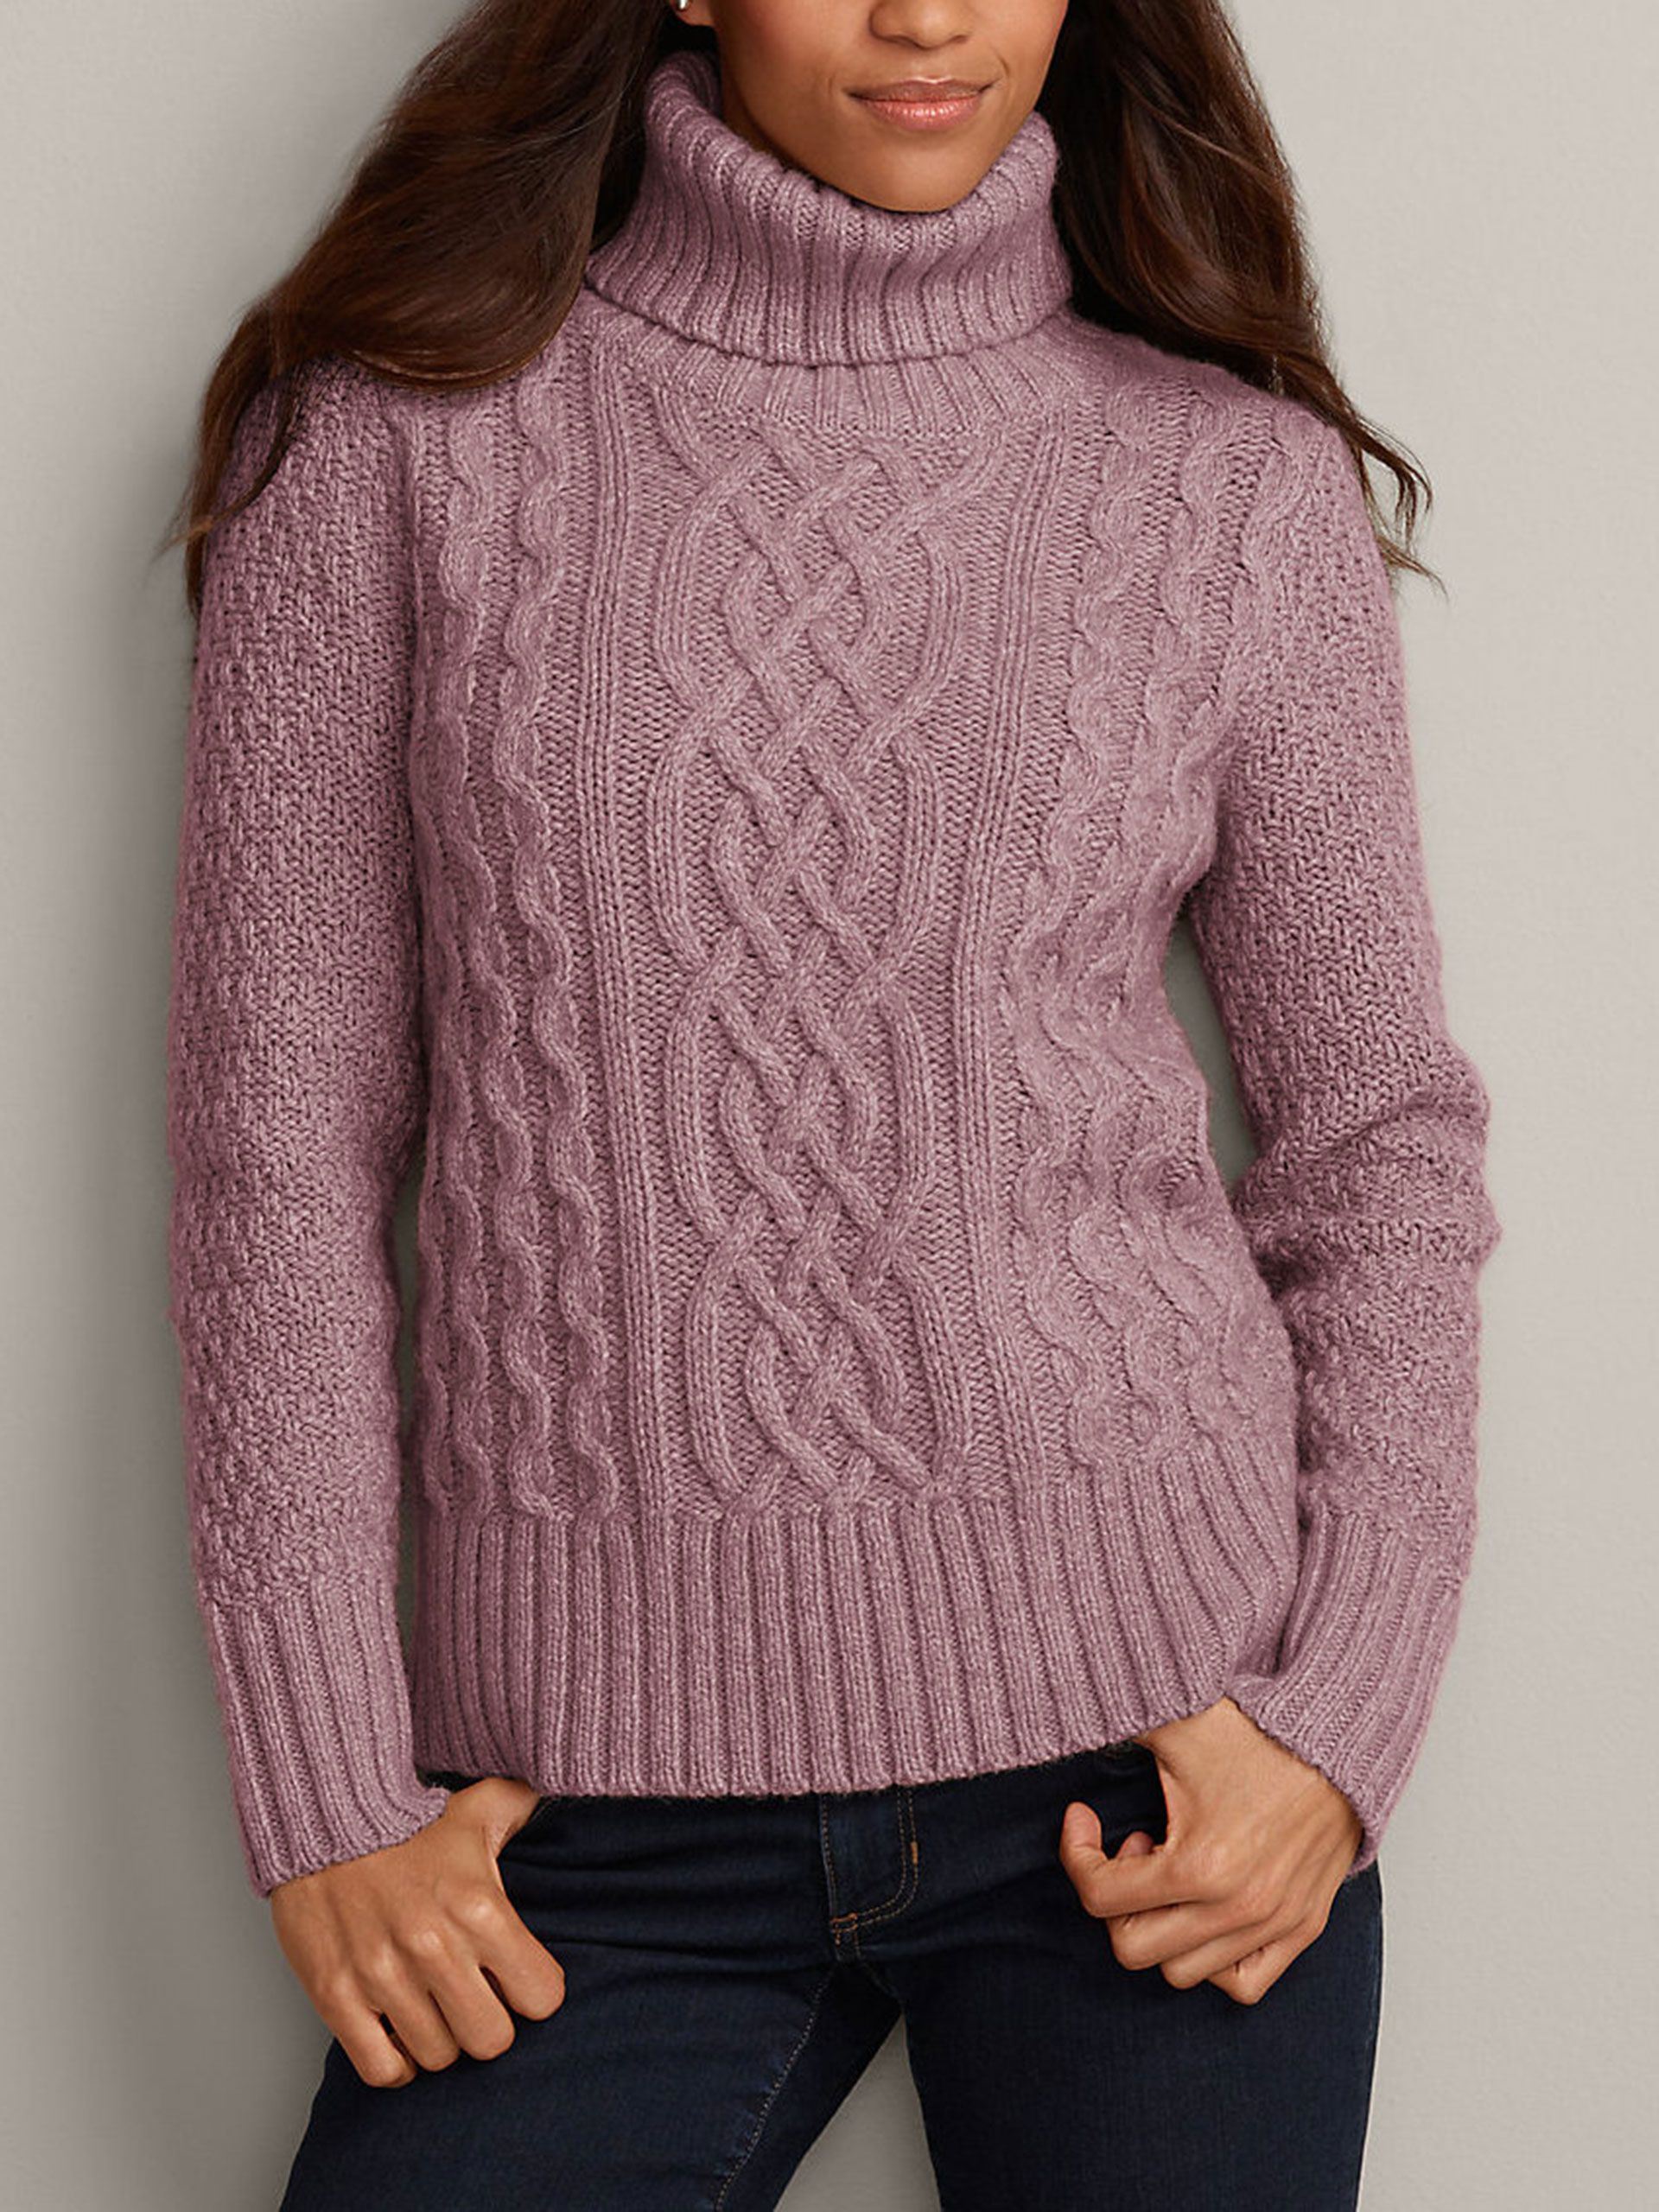 Cable turtleneck sweater, $90; Eddie Bauer. Courtesy of the Company  - Redbook.com